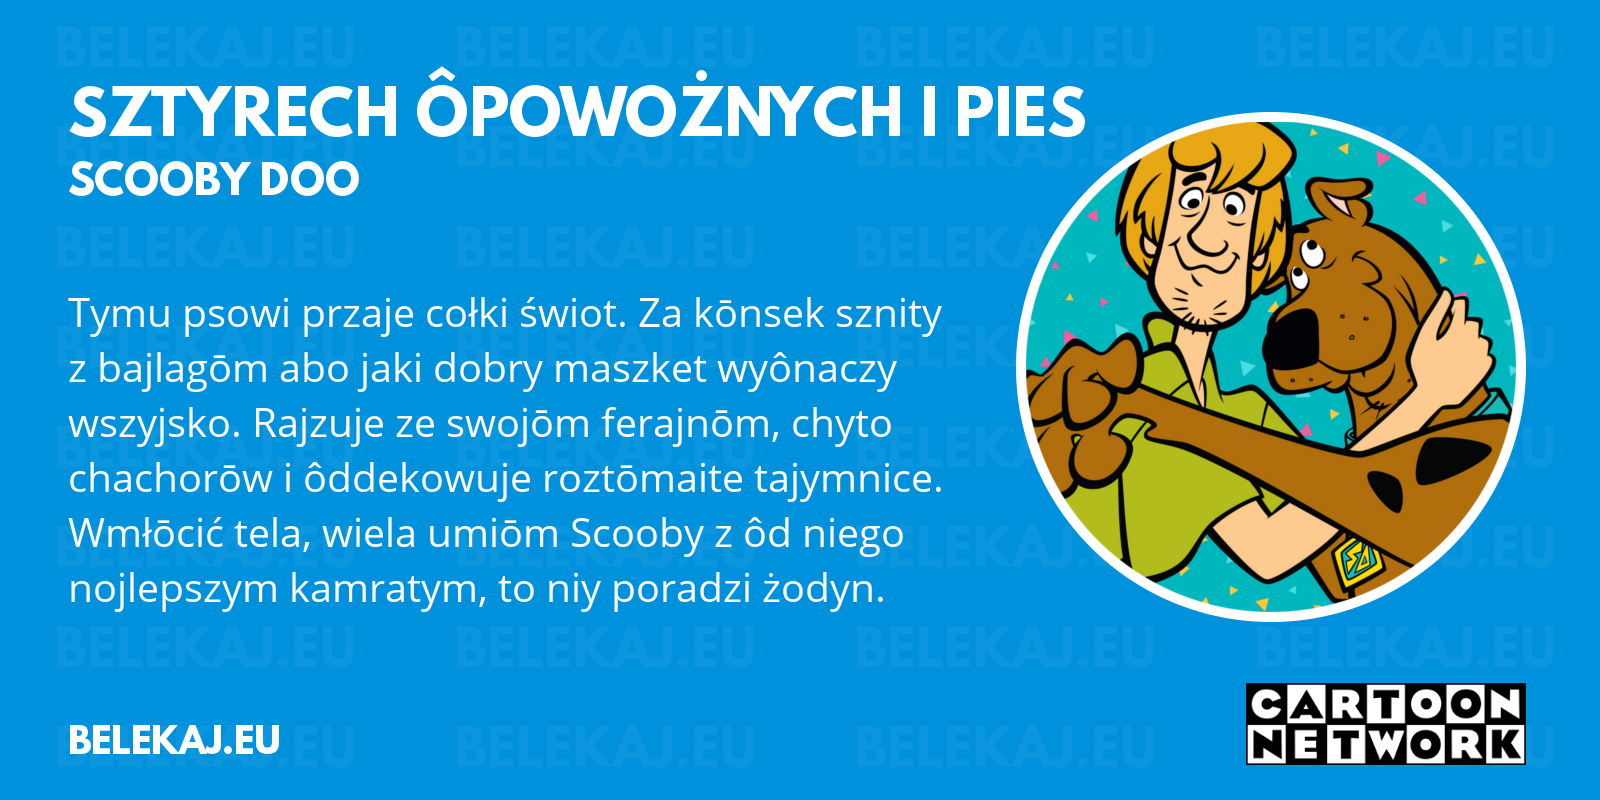 Scooby Doo, Cartoon Network po śląsku - blog bele kaj